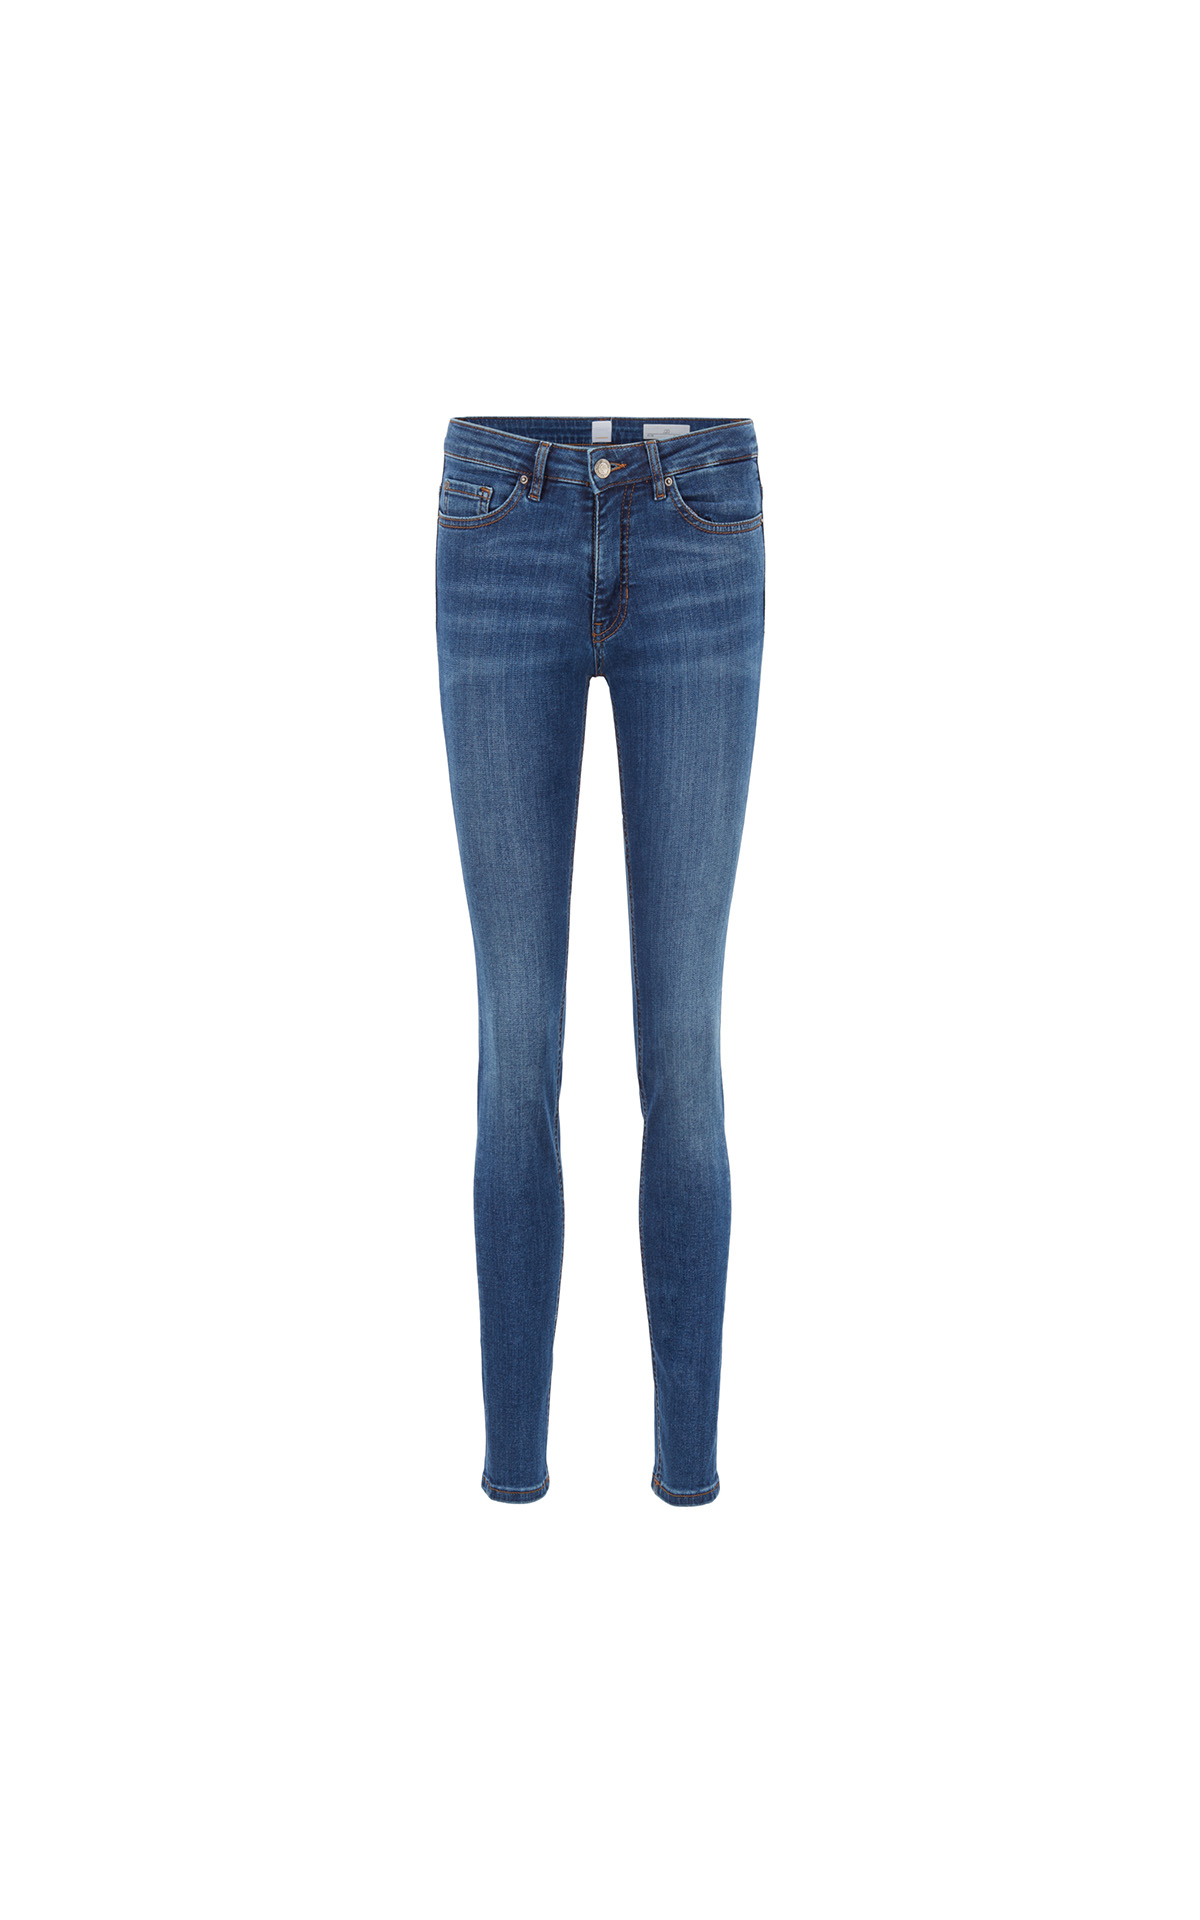 Boss J20 Slim Fit Jeans at The Bicester Village Shopping Collection